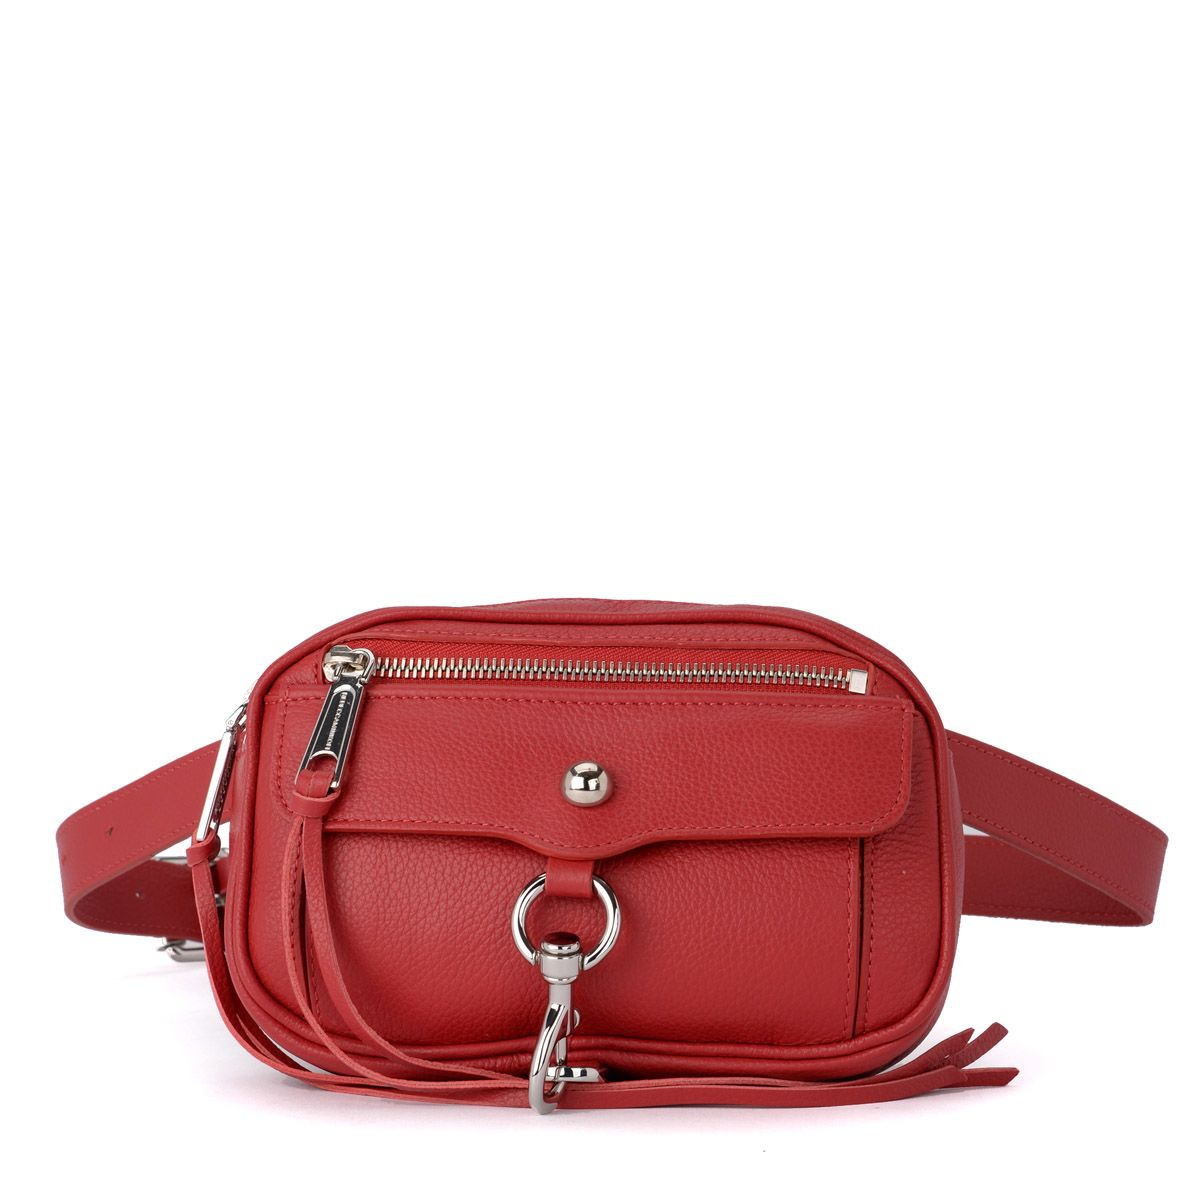 Rebecca Minkoff Blythe Red Leather Pouch